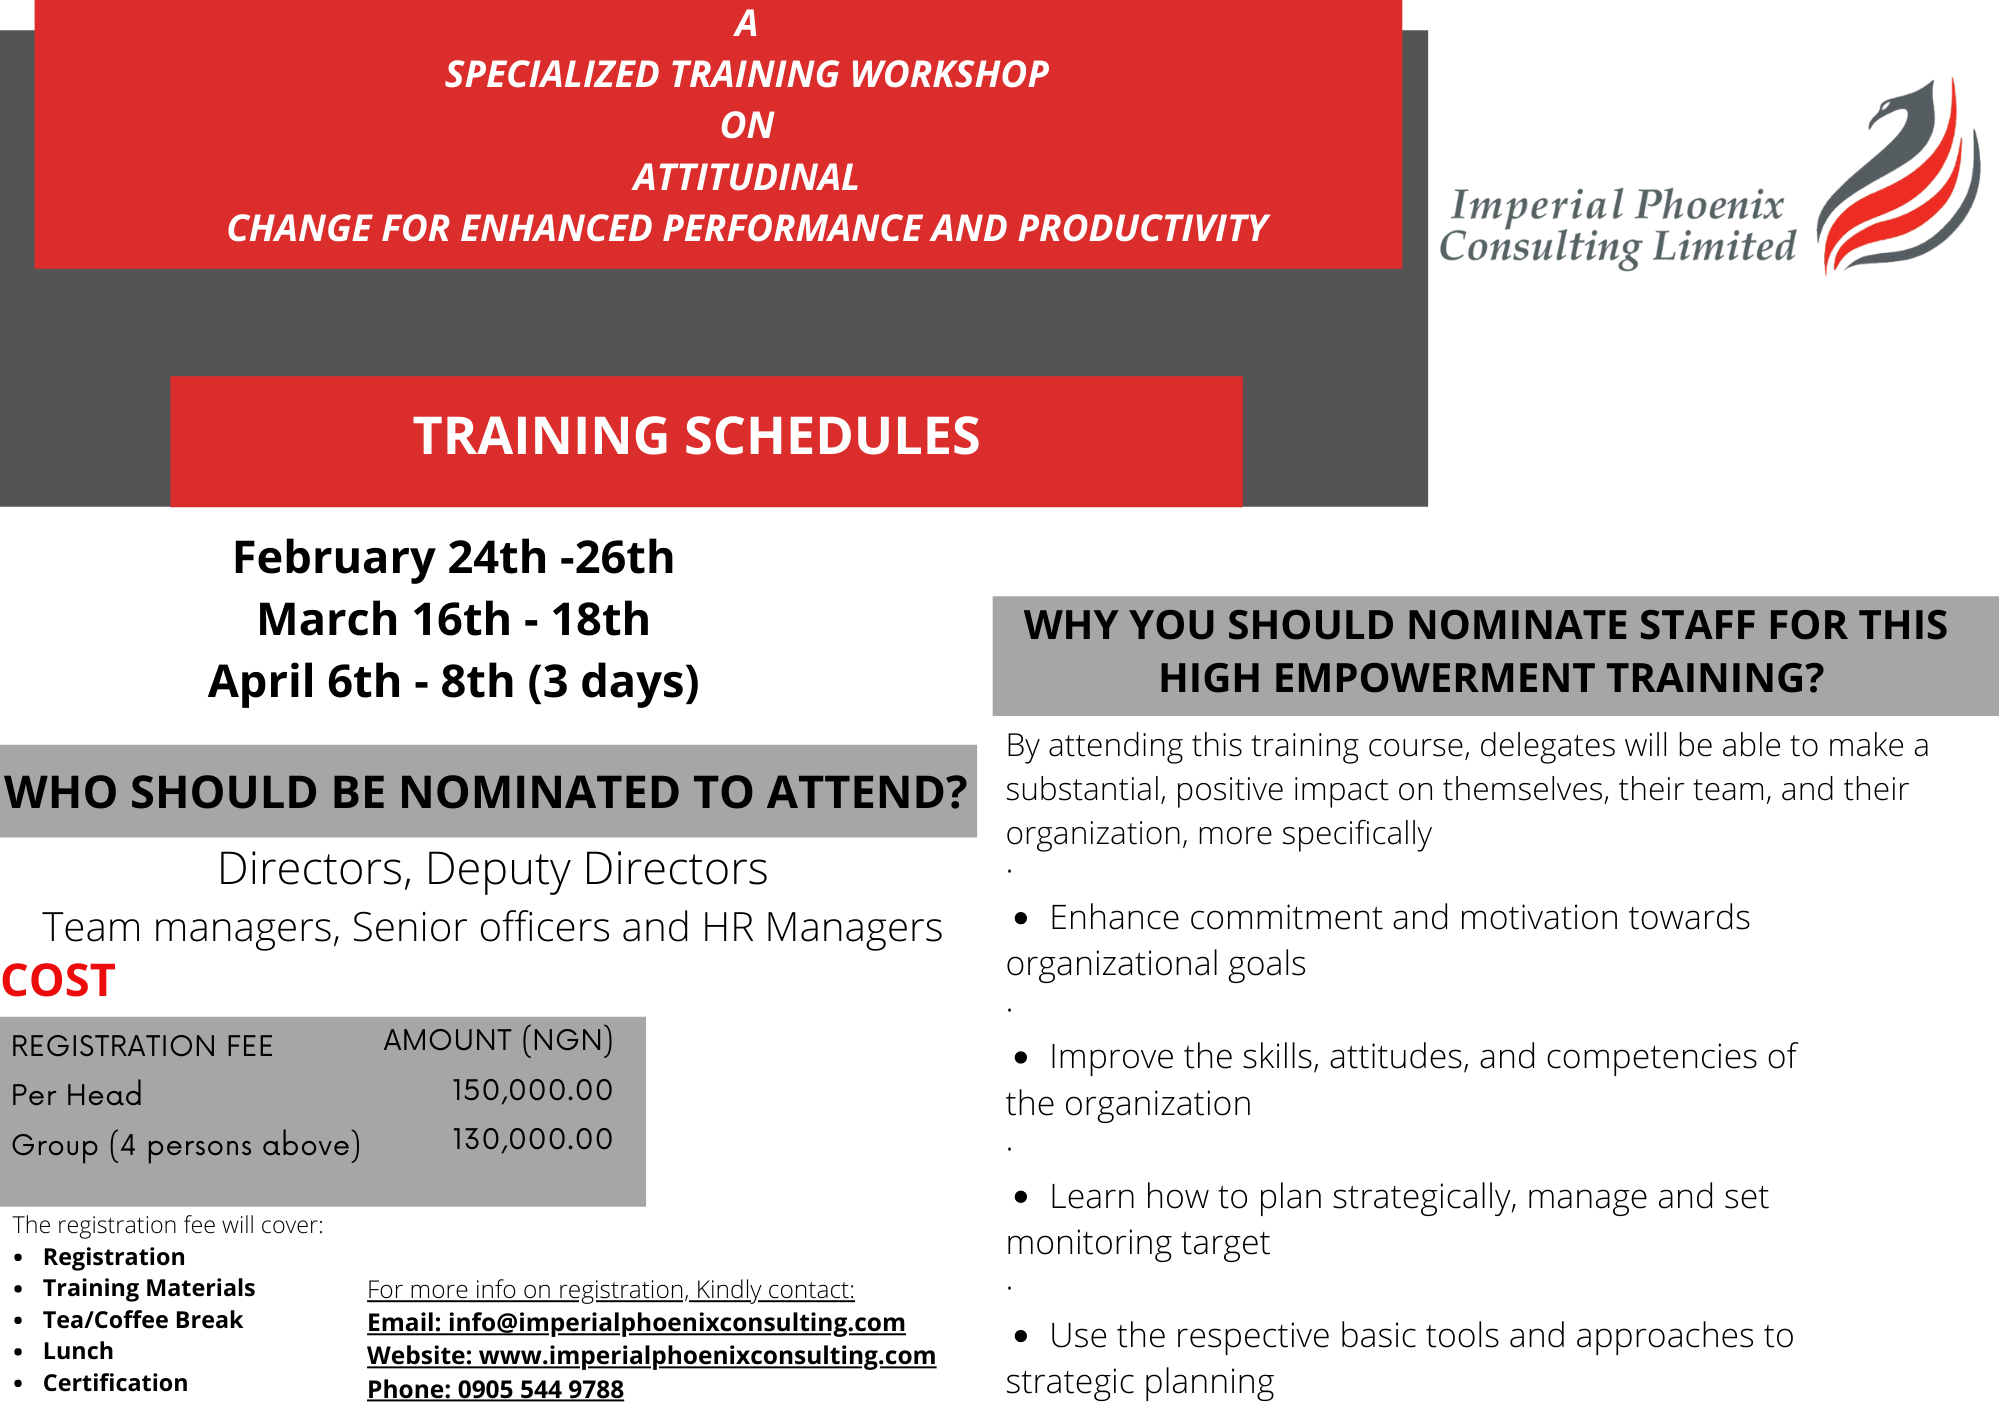 A SPECIALIZED TRAINING WORKSHOP ON ATTITUDINAL CHANGE FOR ENHANCED PERFORMANCE AND PRODUCTIVITY